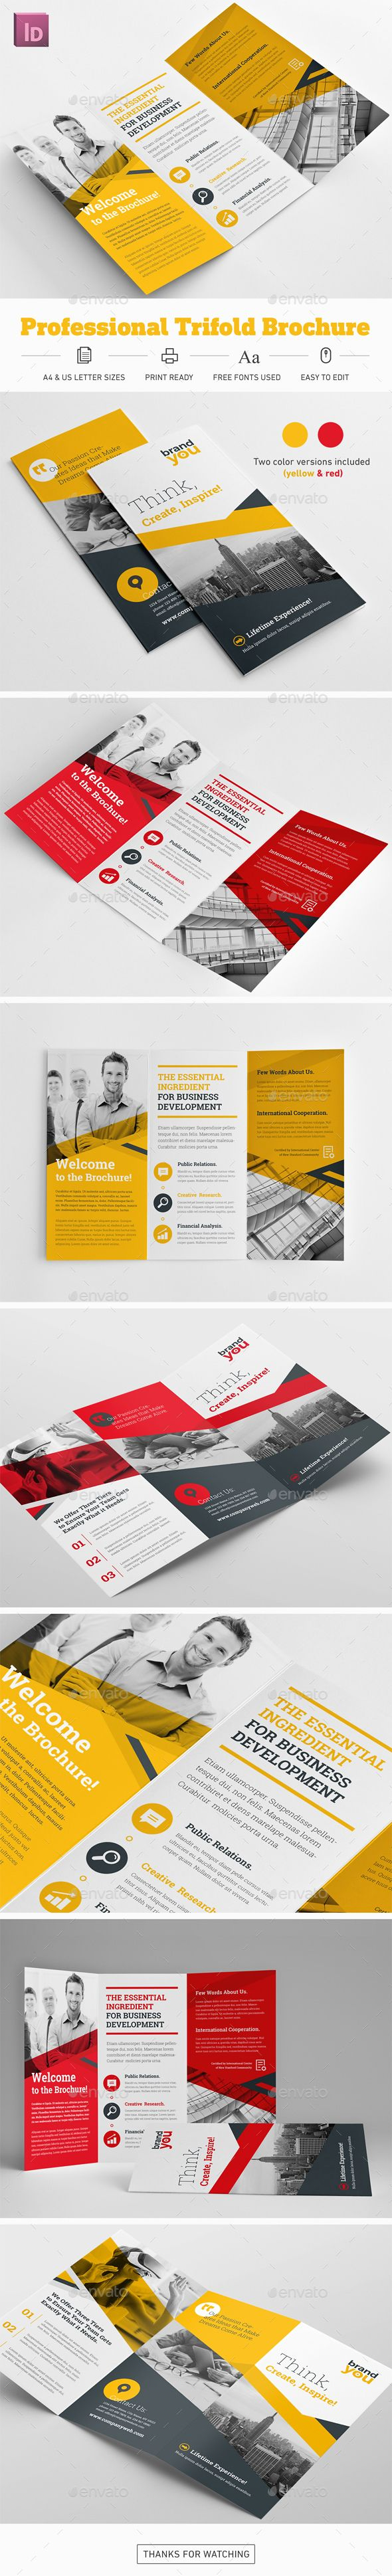 Professional Trifold Brochure — InDesign INDD #high school #trifold • Available here → https://graphicriver.net/item/professional-trifold-brochure/19811803?ref=pxcr